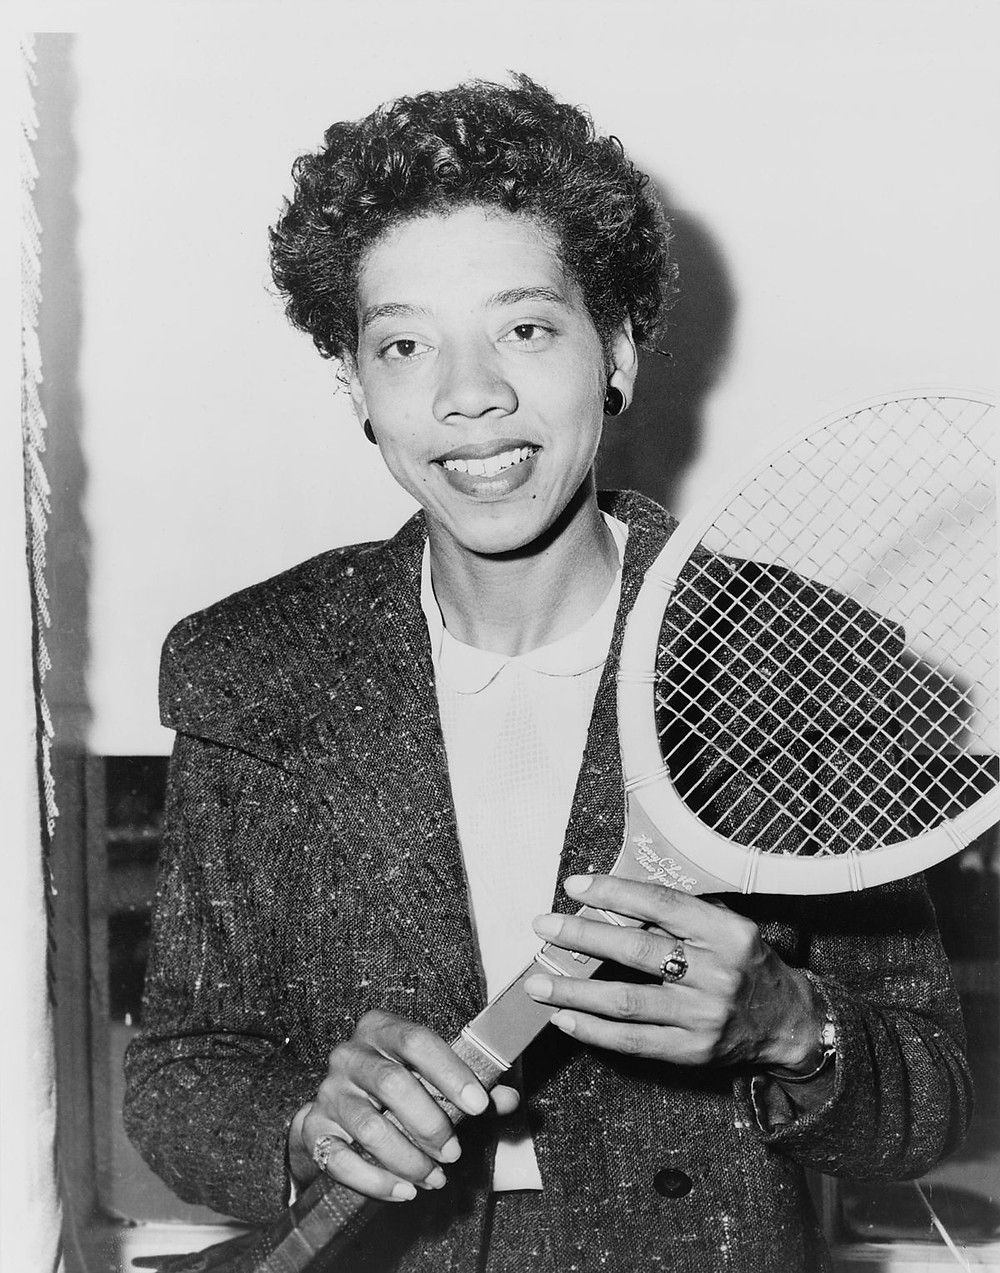 FIRST BLACK FEMALE TO CROSS THE COLOR LINE OF INTERNATIONAL TENNIS